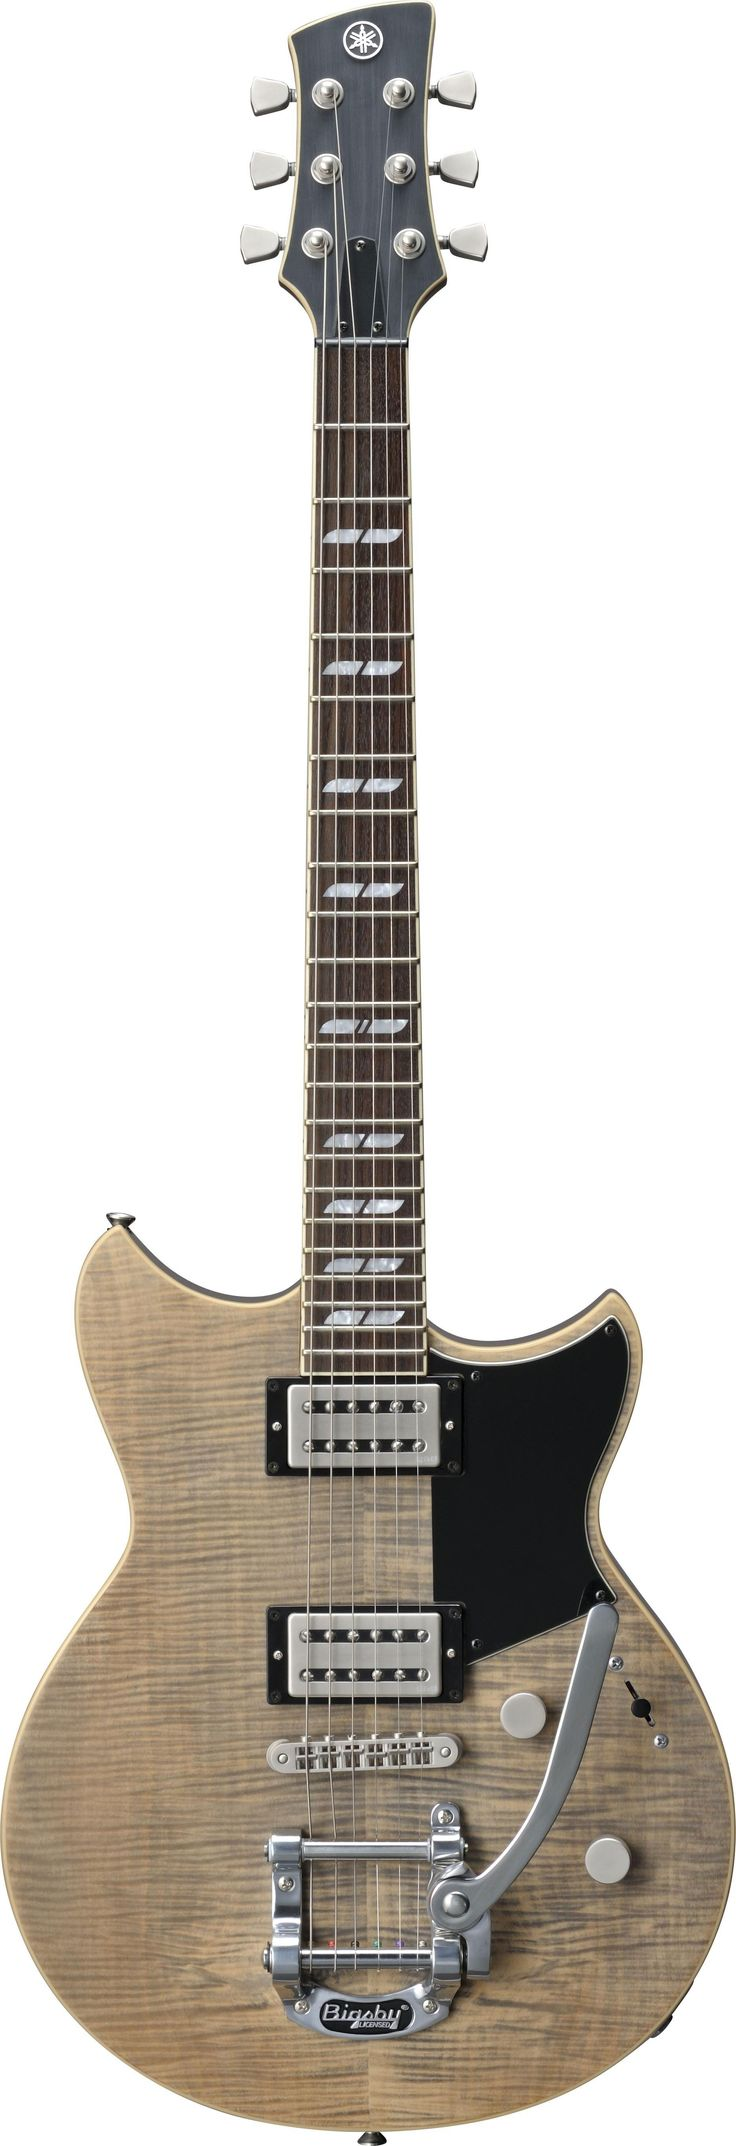 RS720B - REVSTAR Series - Electric Guitars - Guitars & Basses - Musical Instruments - Products - Yamaha United States